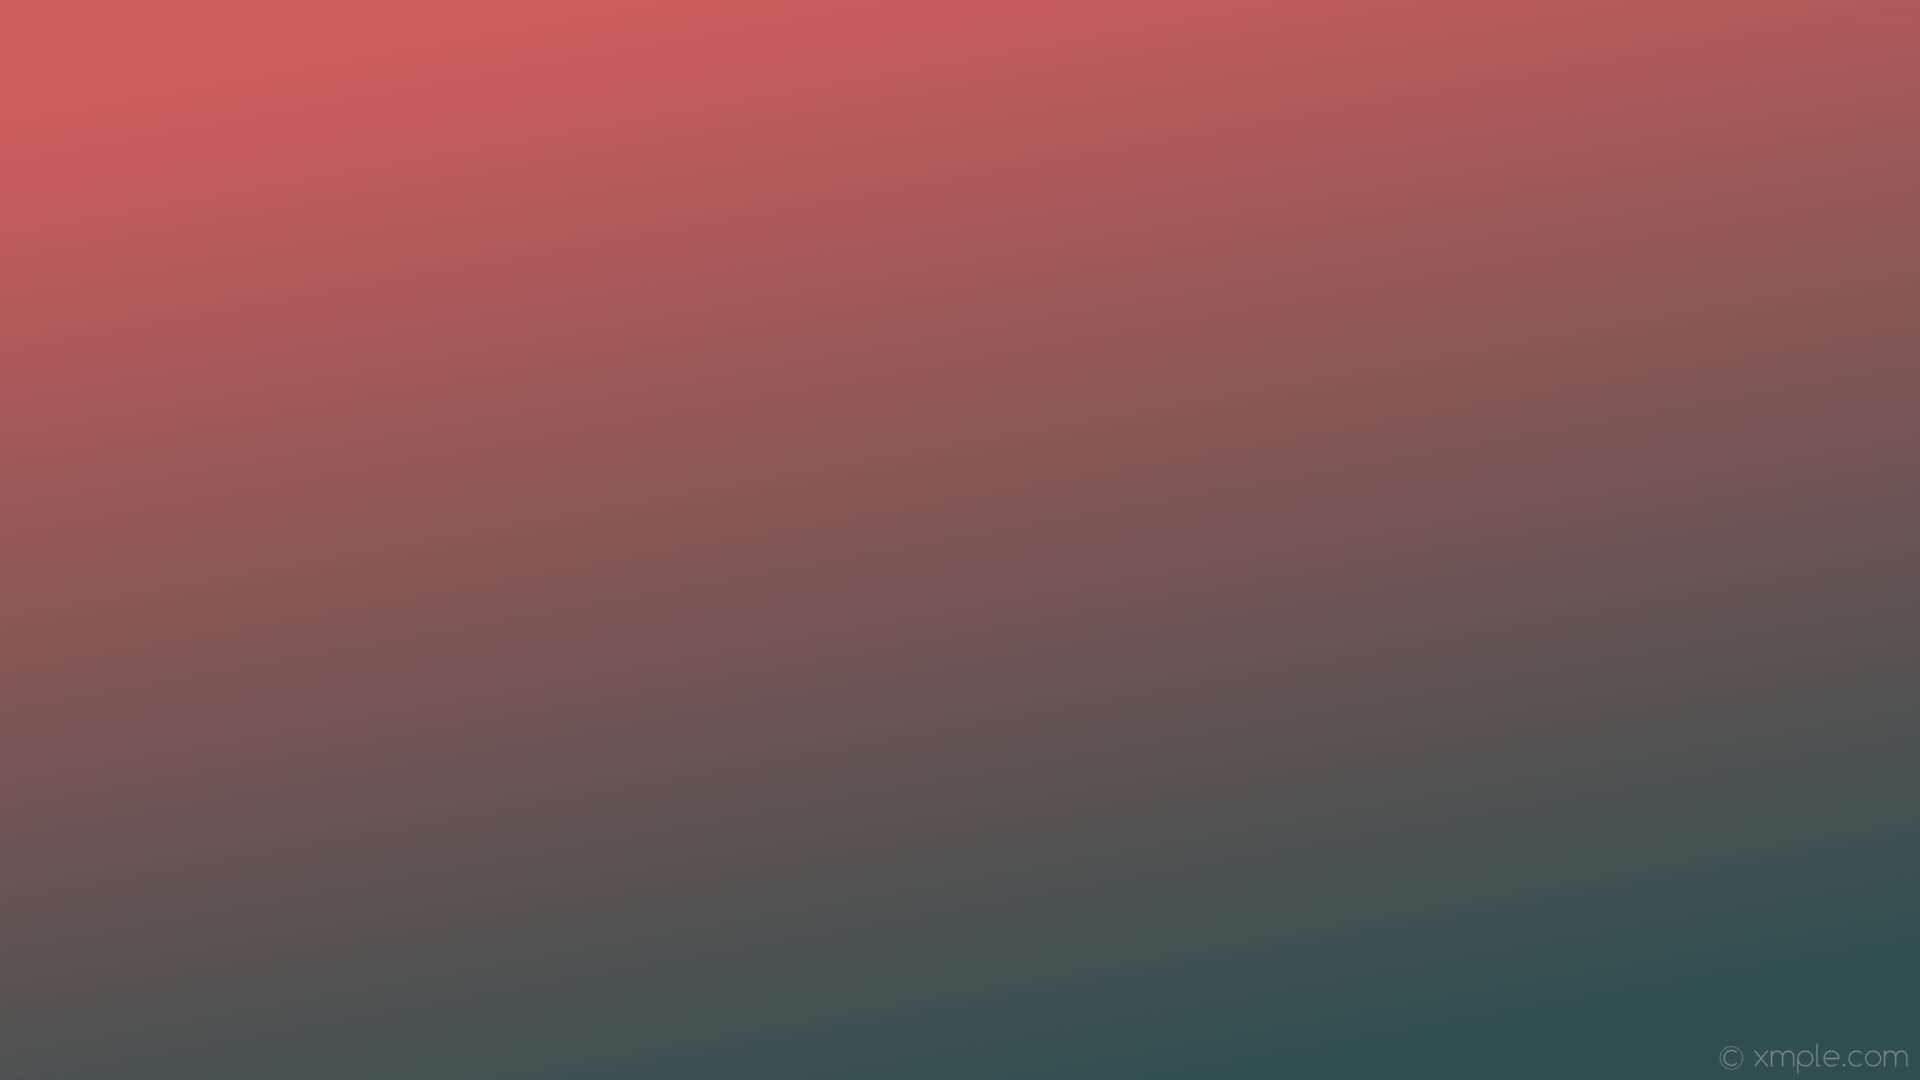 1920x1080 wallpaper linear red grey gradient indian red dark slate gray #cd5c5c  #2f4f4f 120°